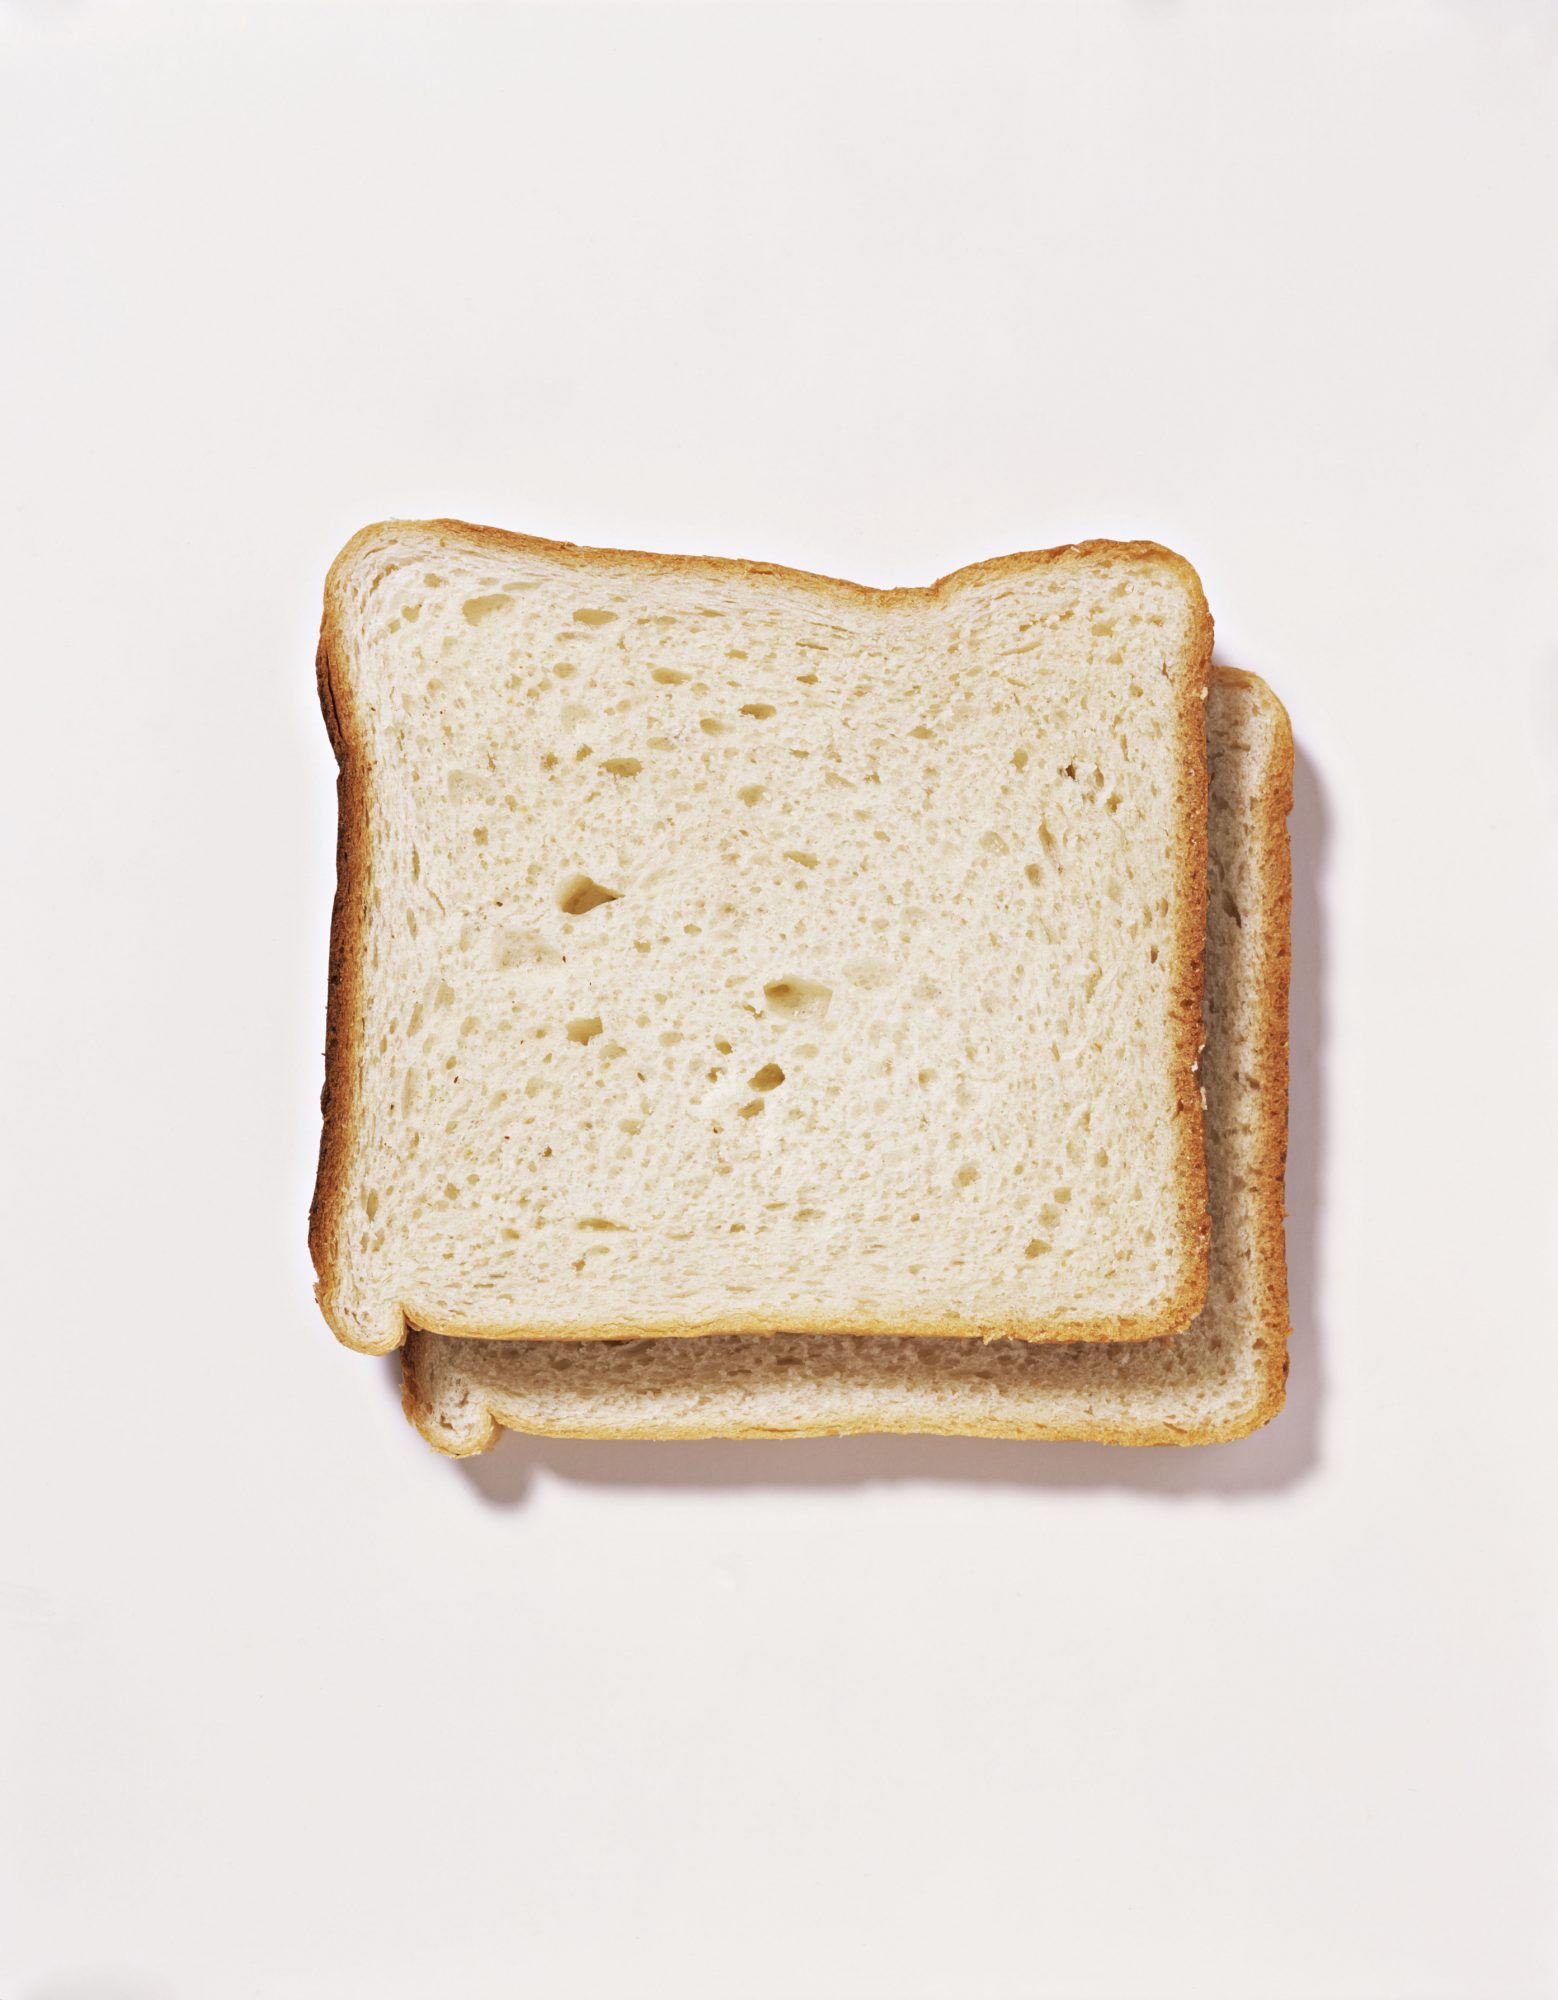 04-carbohydrates-cancer-foods-white-bread